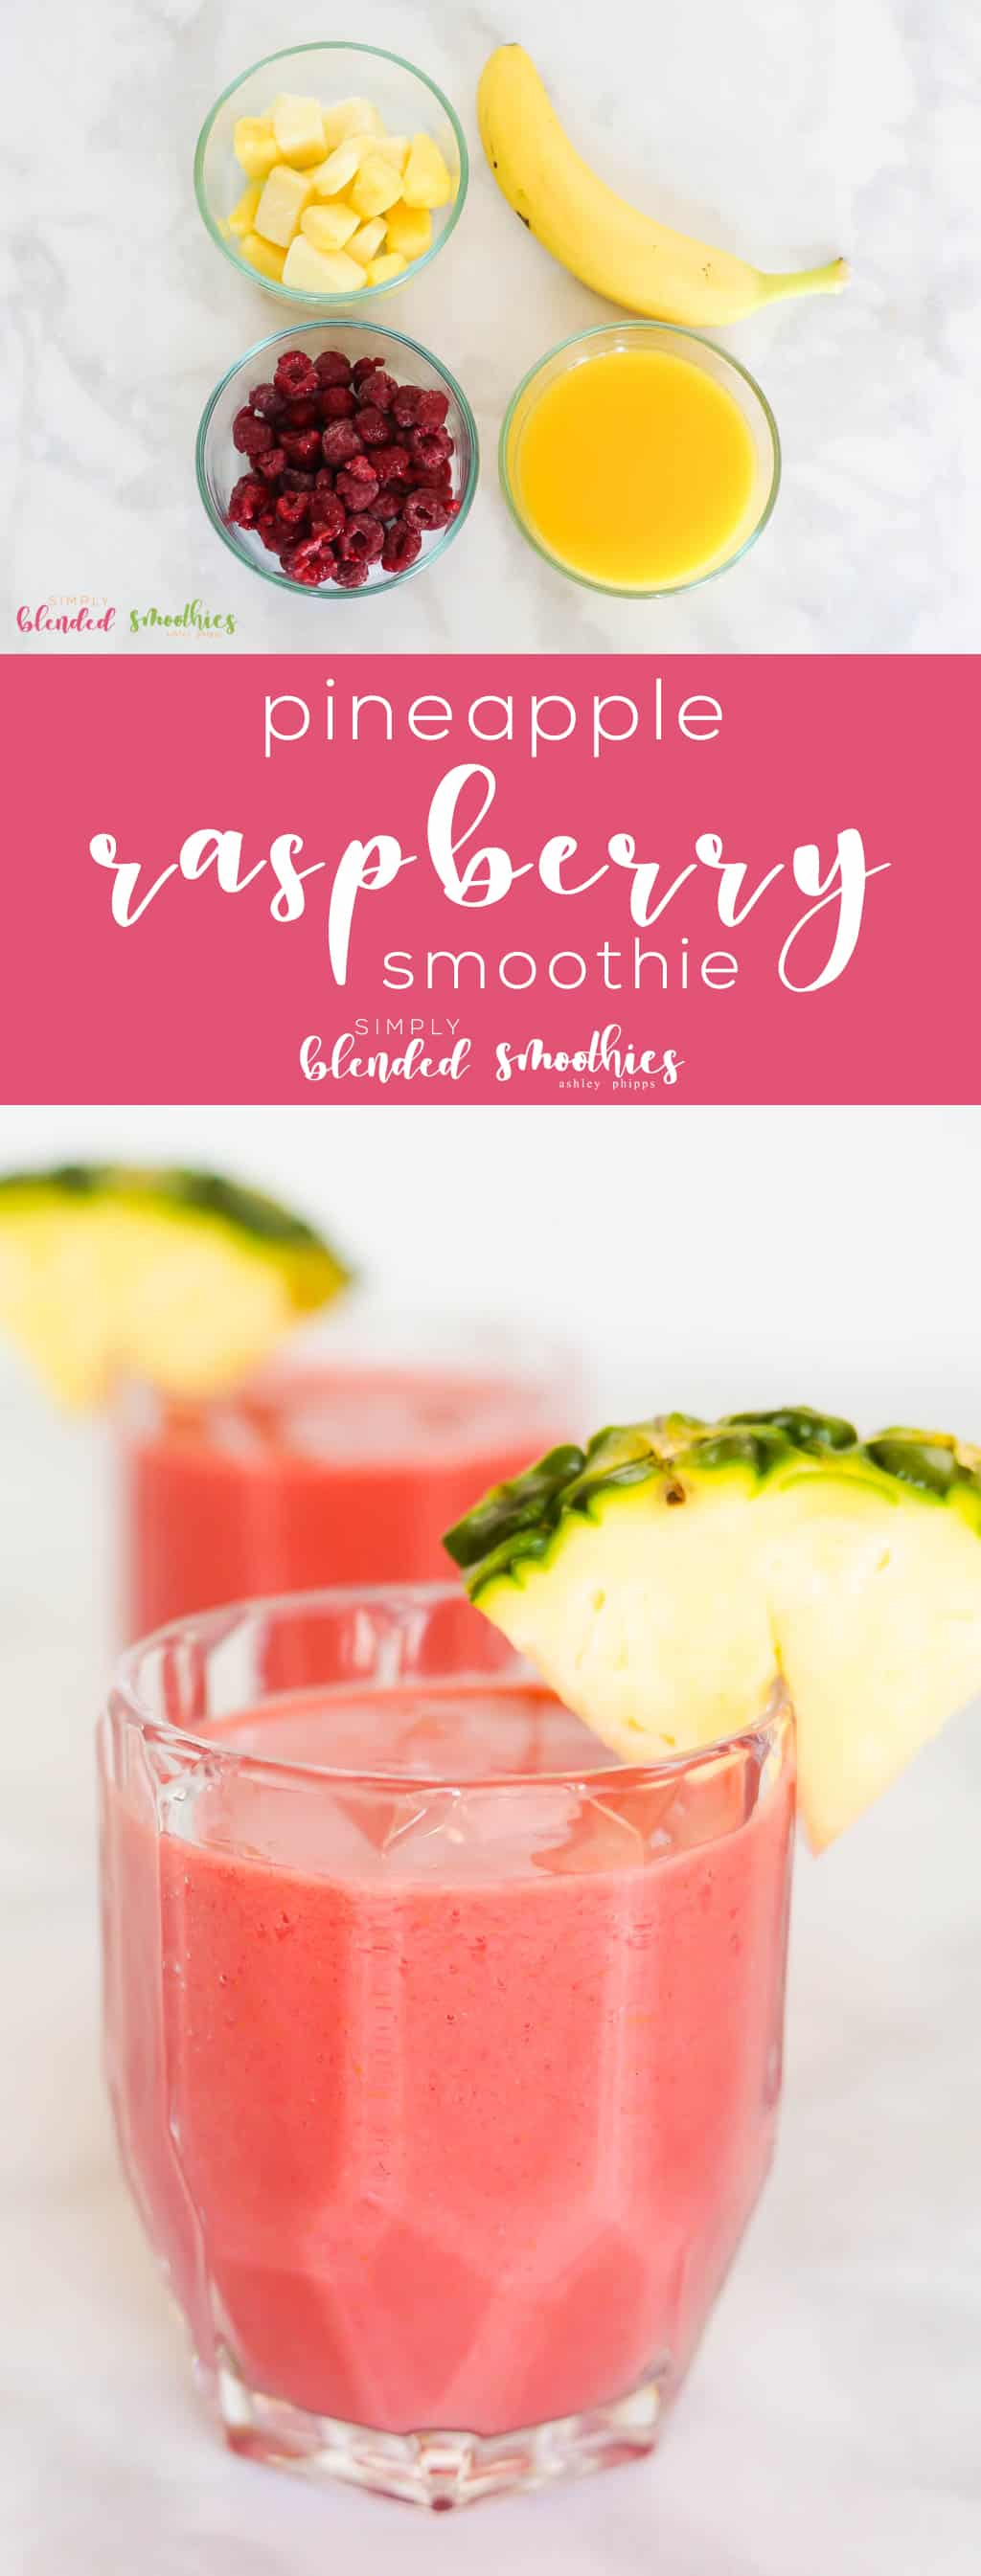 Pineapple Raspberry Smoothie - this smoothie is full of flavor is healthy and is a great way to start your day